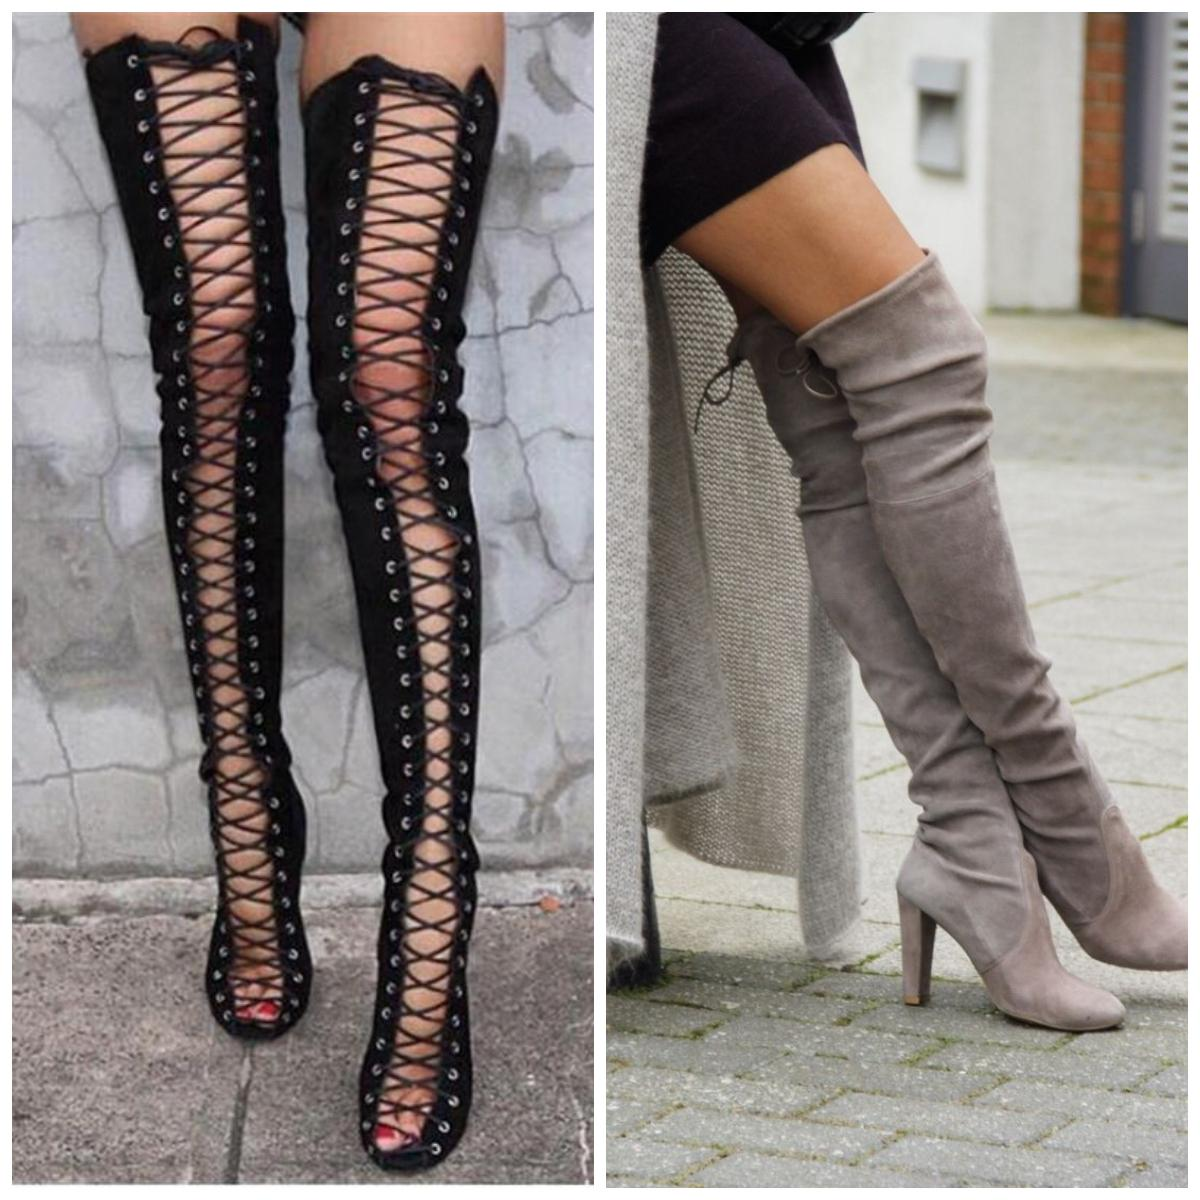 Suit Up Your Legs 5 Chic Ways To Wear Thigh High Hosiery